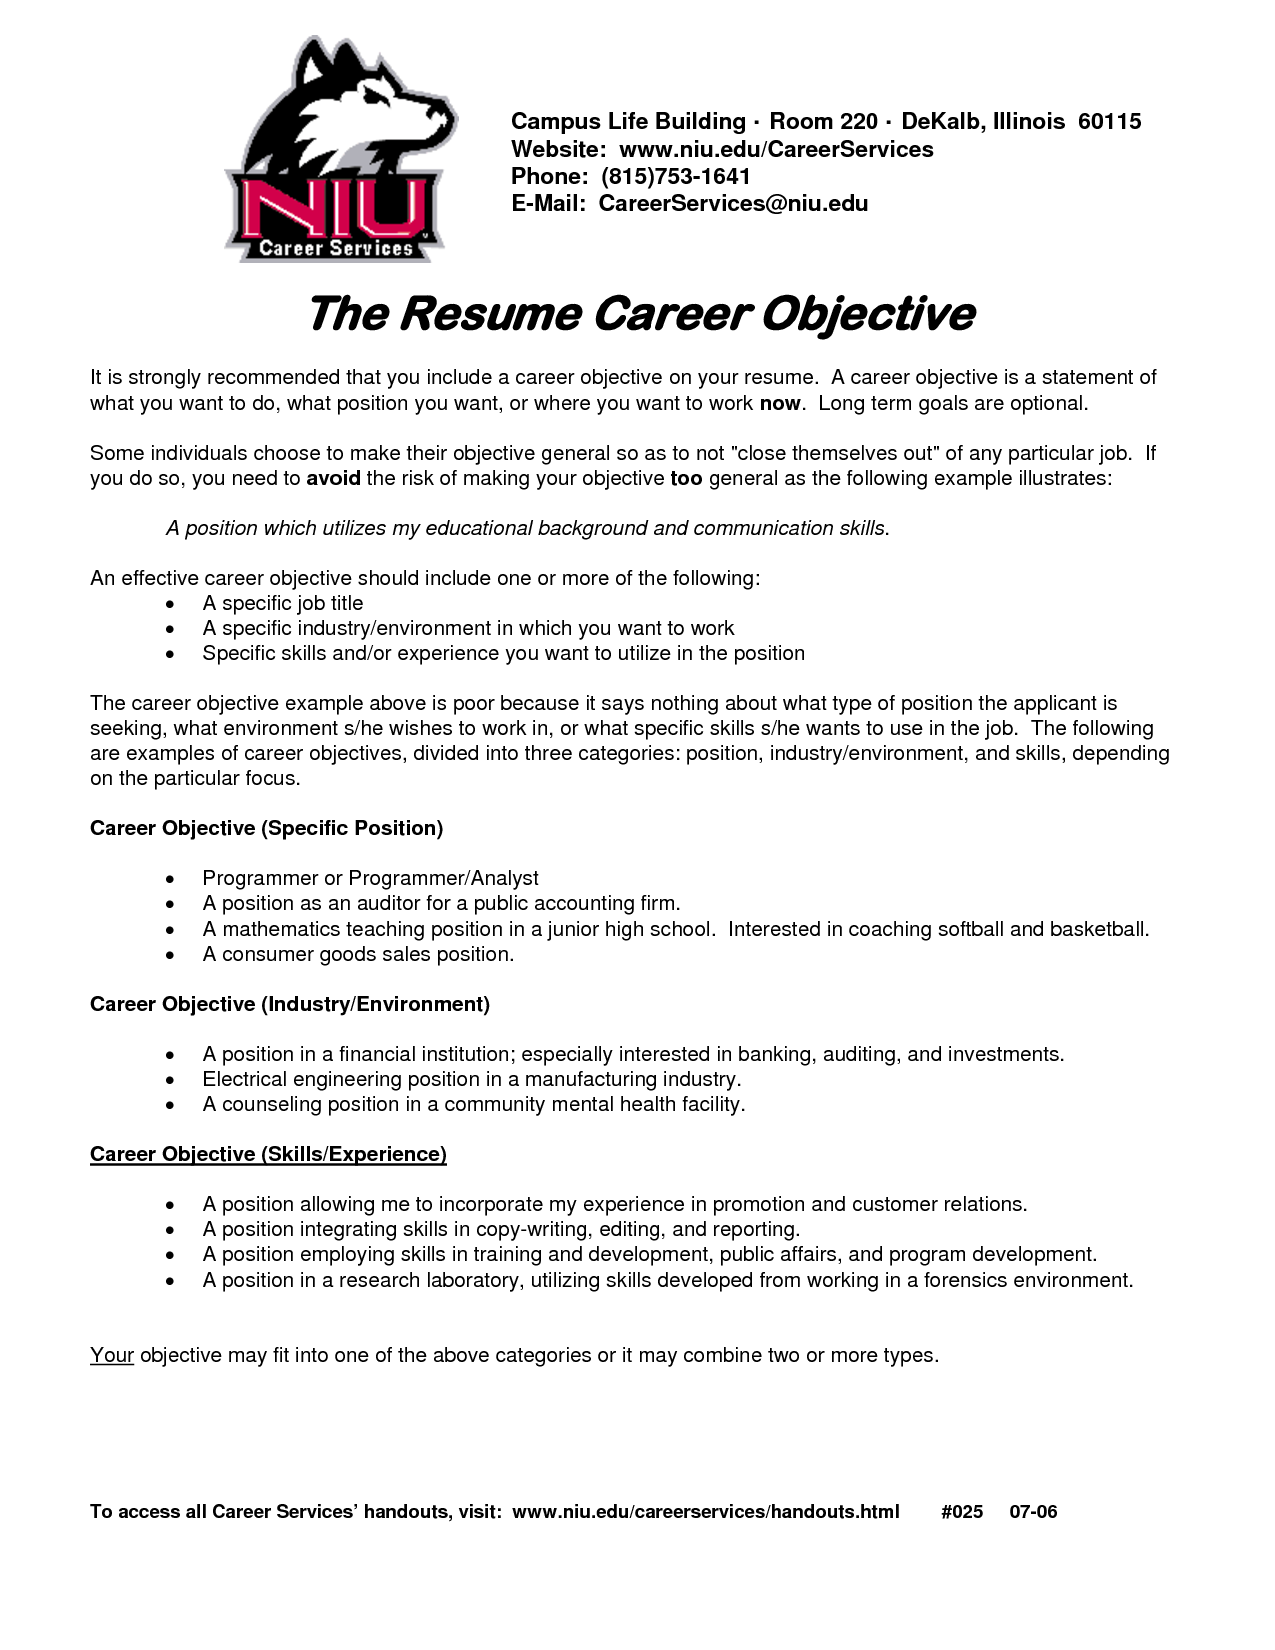 Copy Paste Resume Templates Httpswwwgooglesearchqobjective Resume  Resume